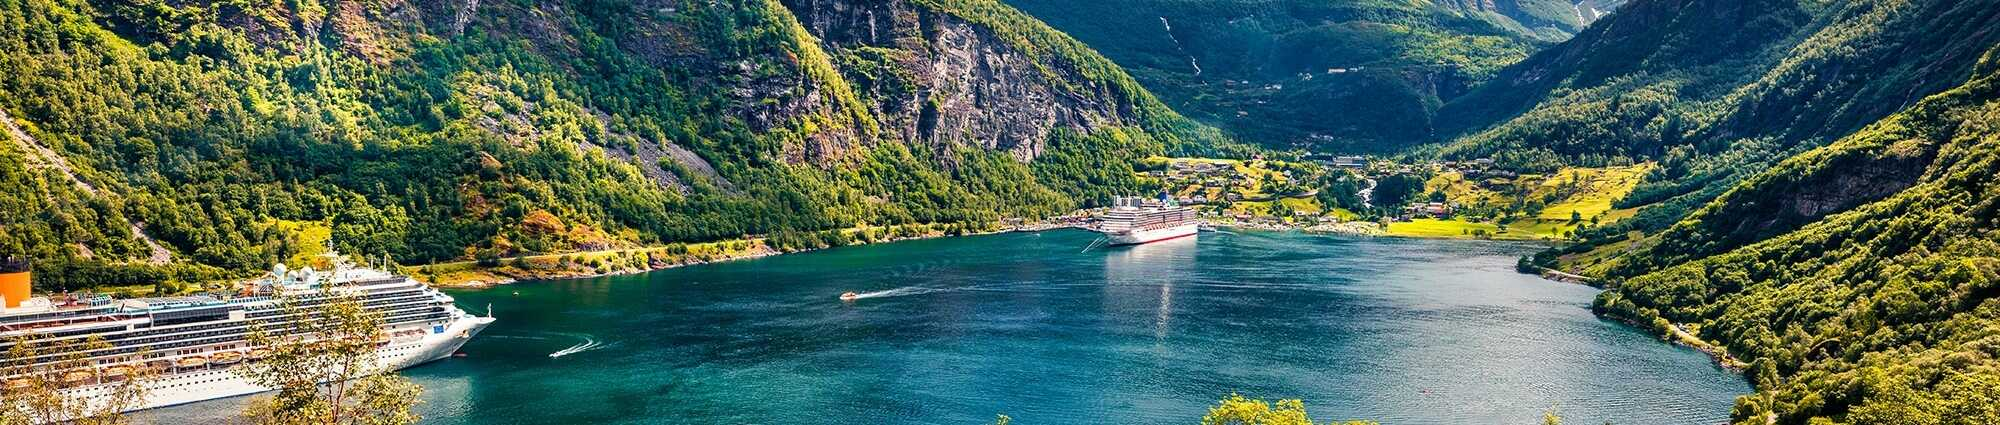 Ferie i Norge